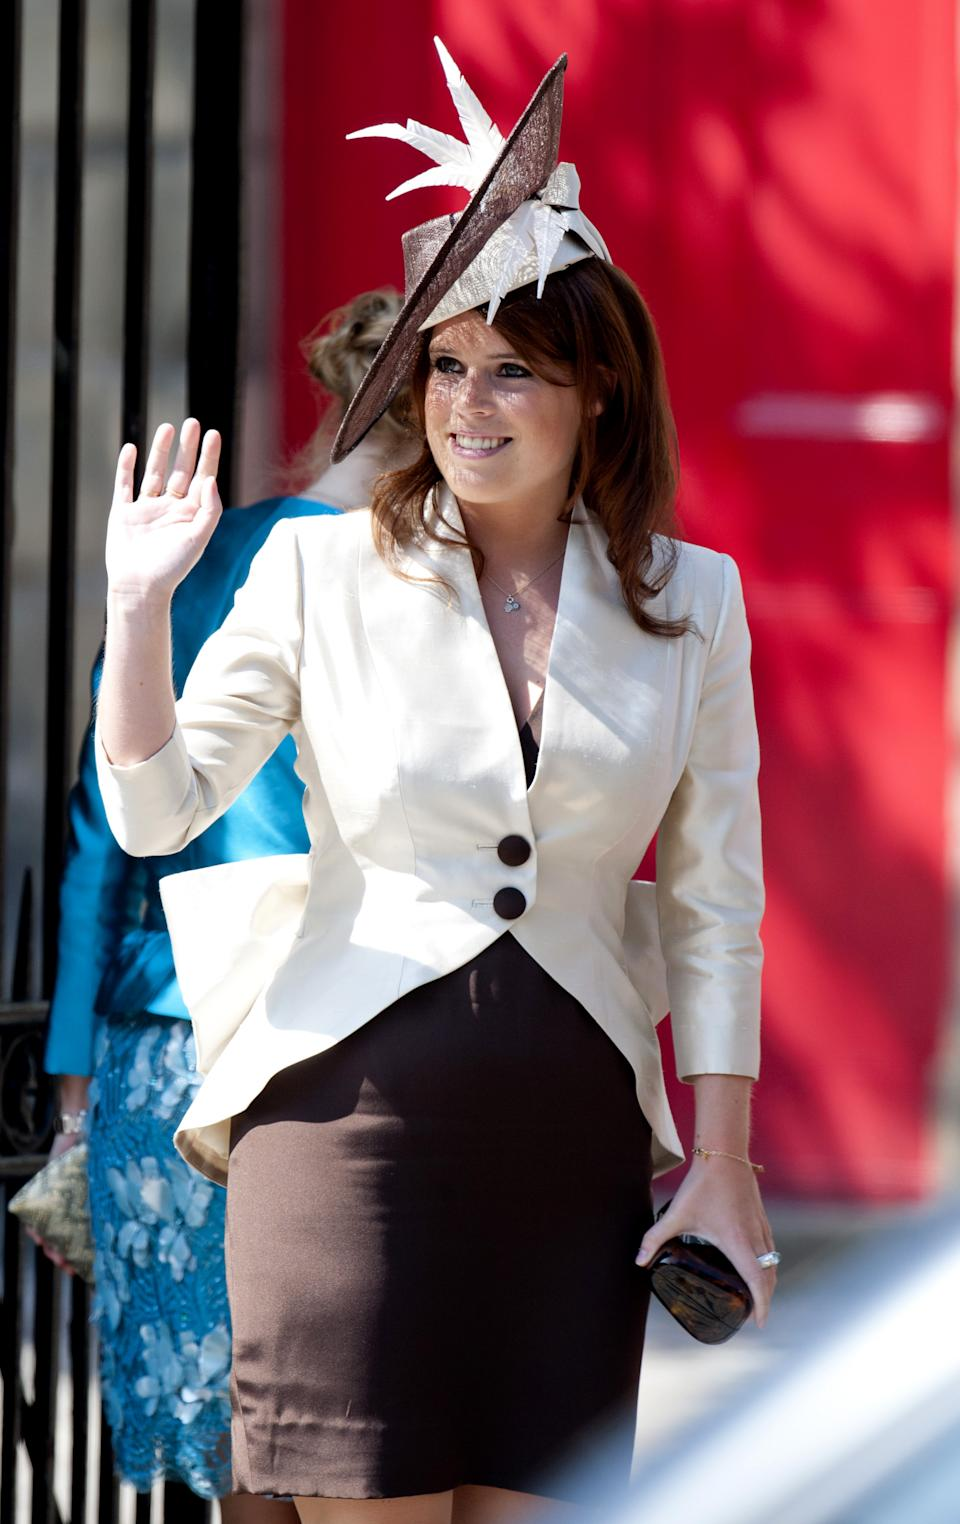 <p>Princess Eugenie chose a subdued outfit and hat at her cousin's wedding. (Mark Cuthbert/UK Press via Getty Images)</p>